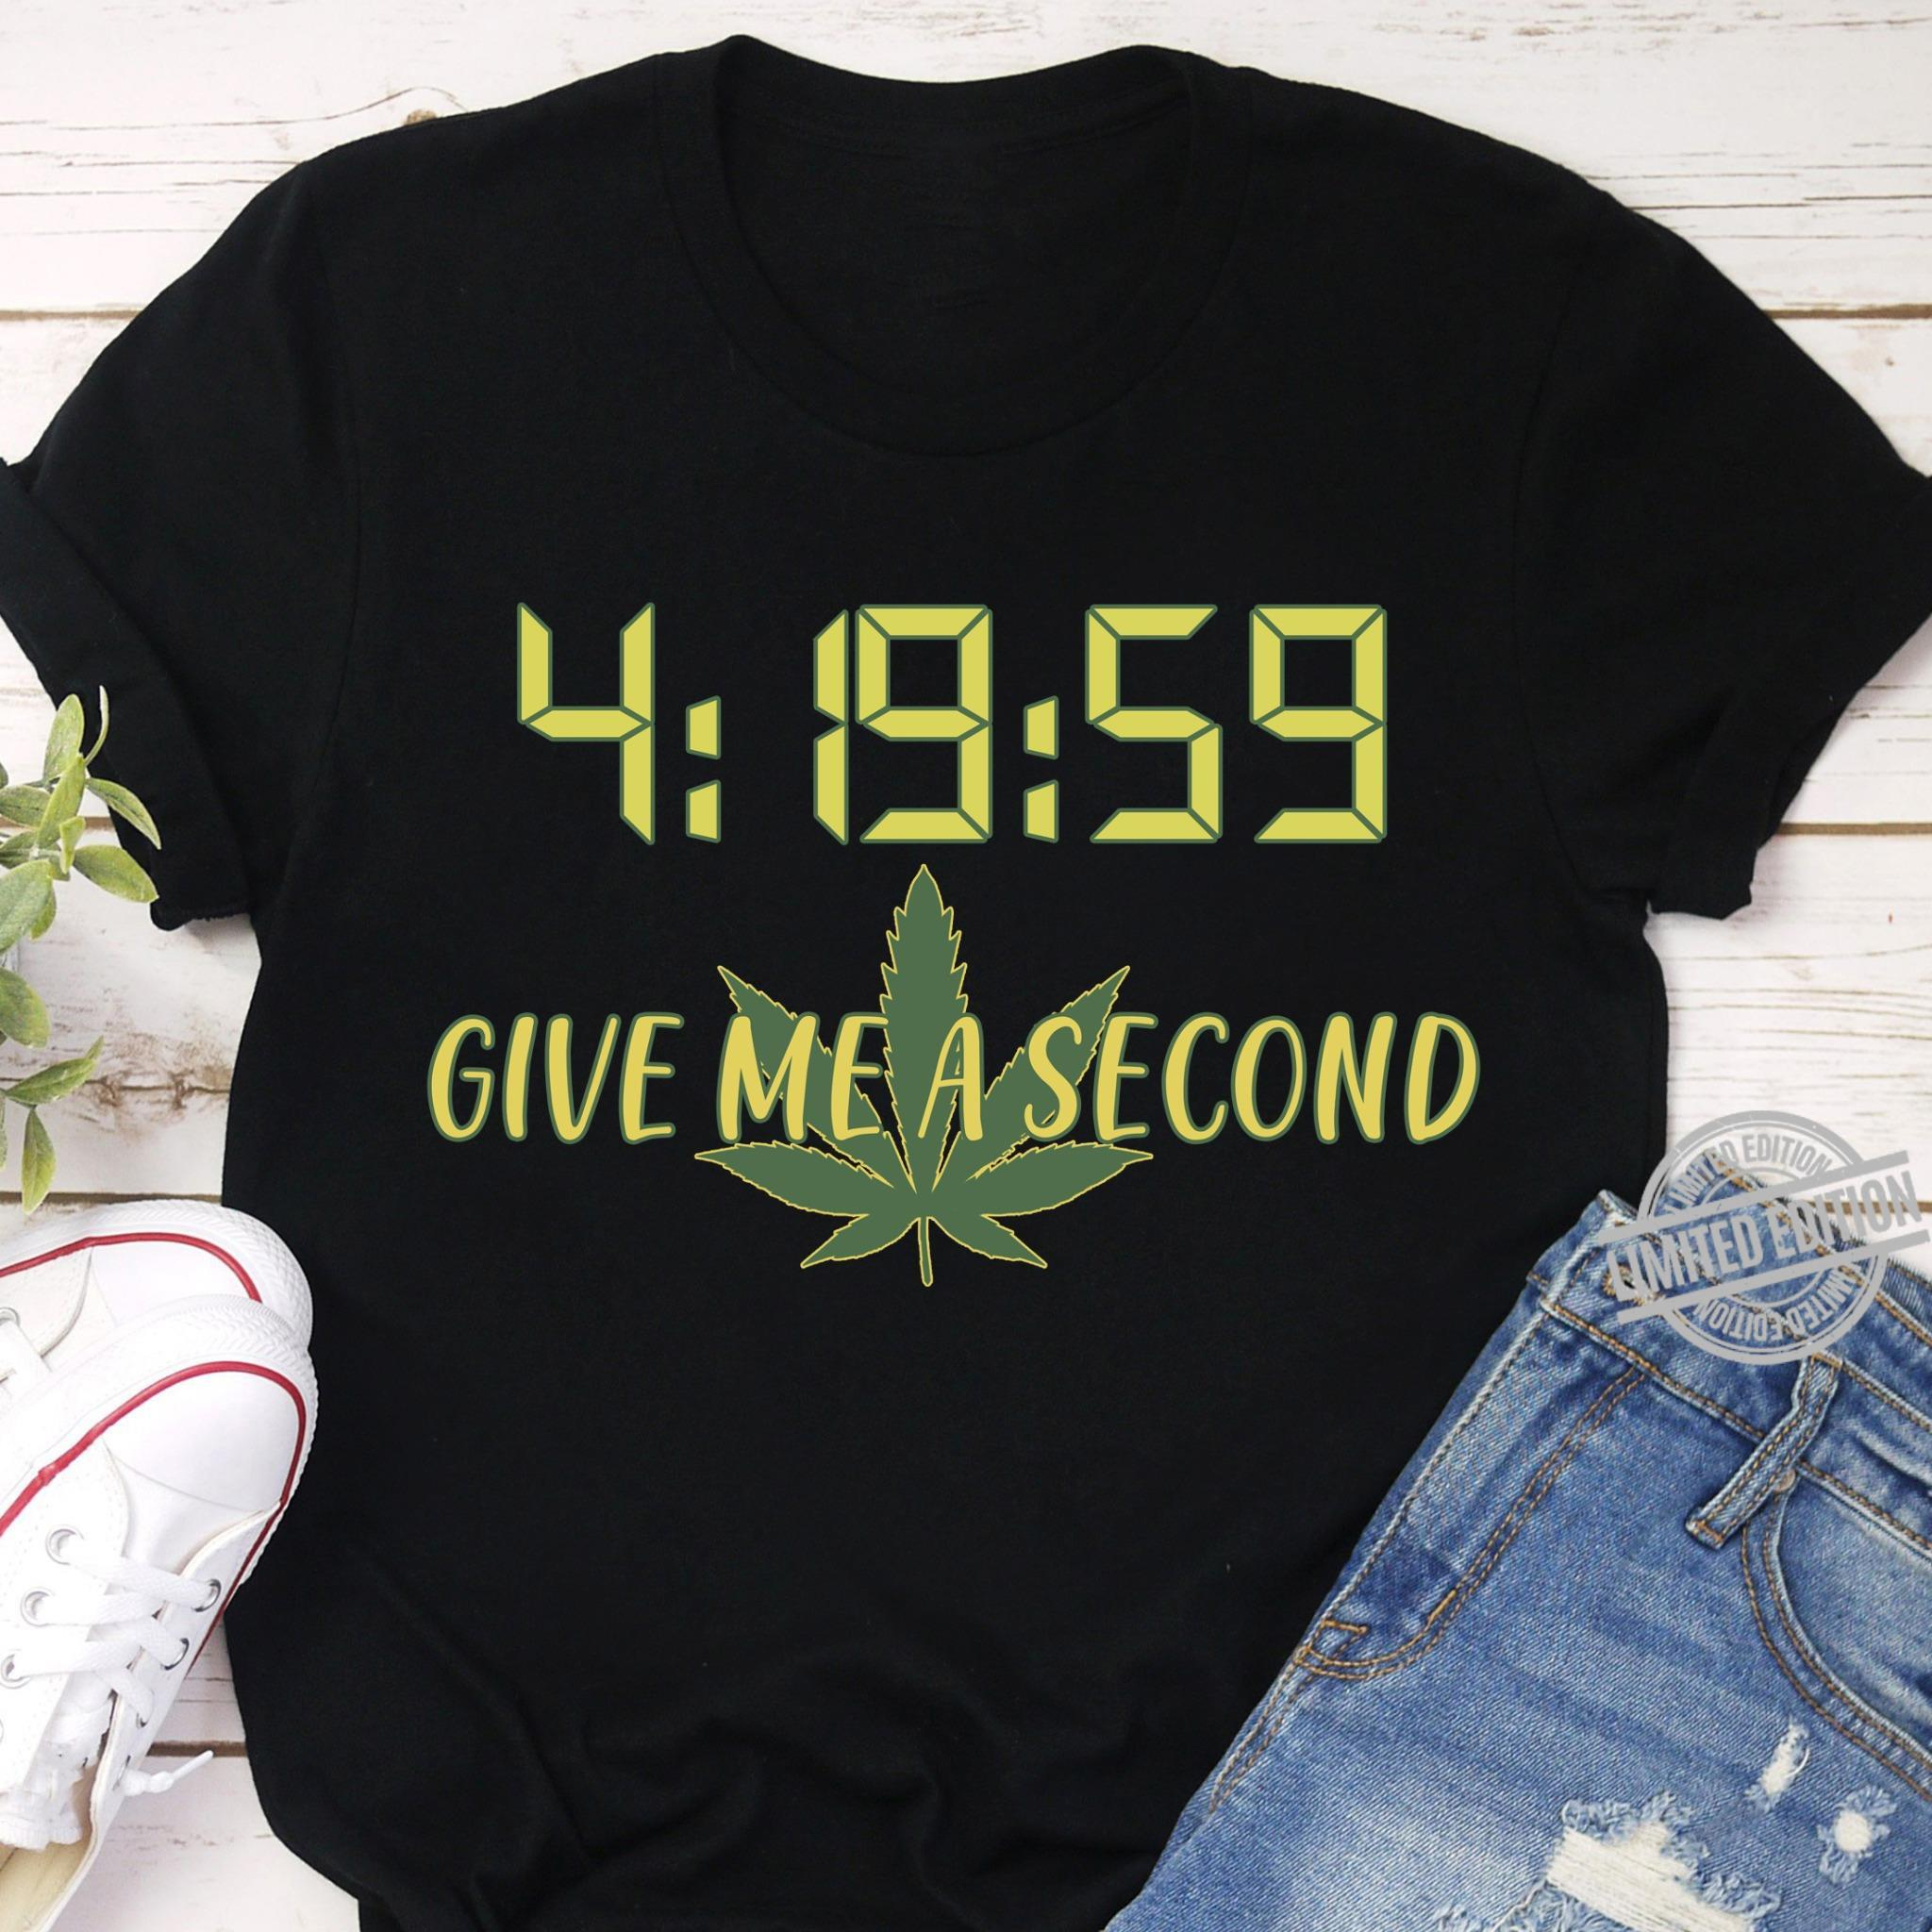 4 19 59 Give Me A Second Shirt